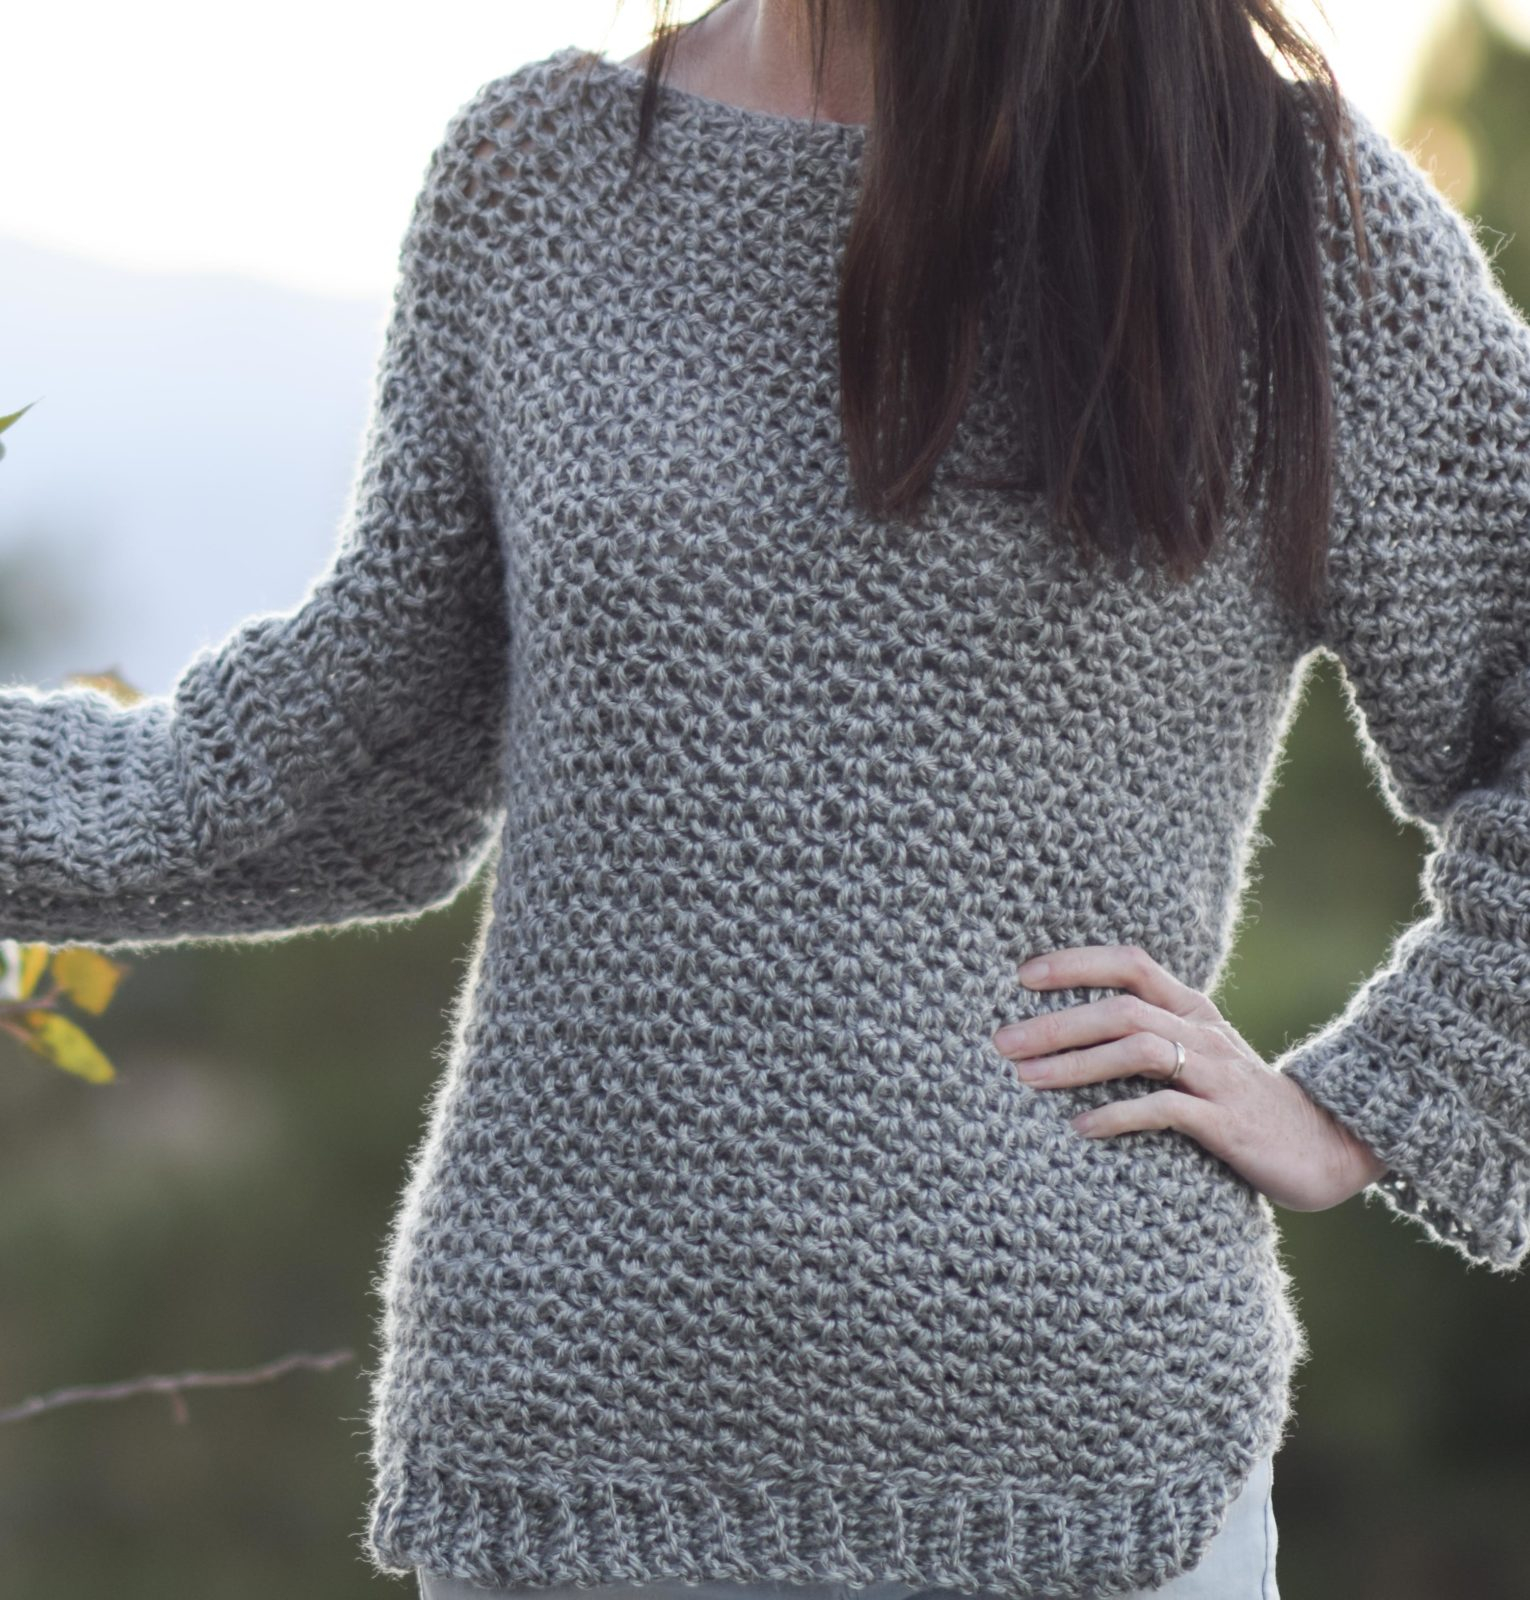 Knit Sweaters Patterns How To Make An Easy Crocheted Sweater Knit Like Mama In A Stitch